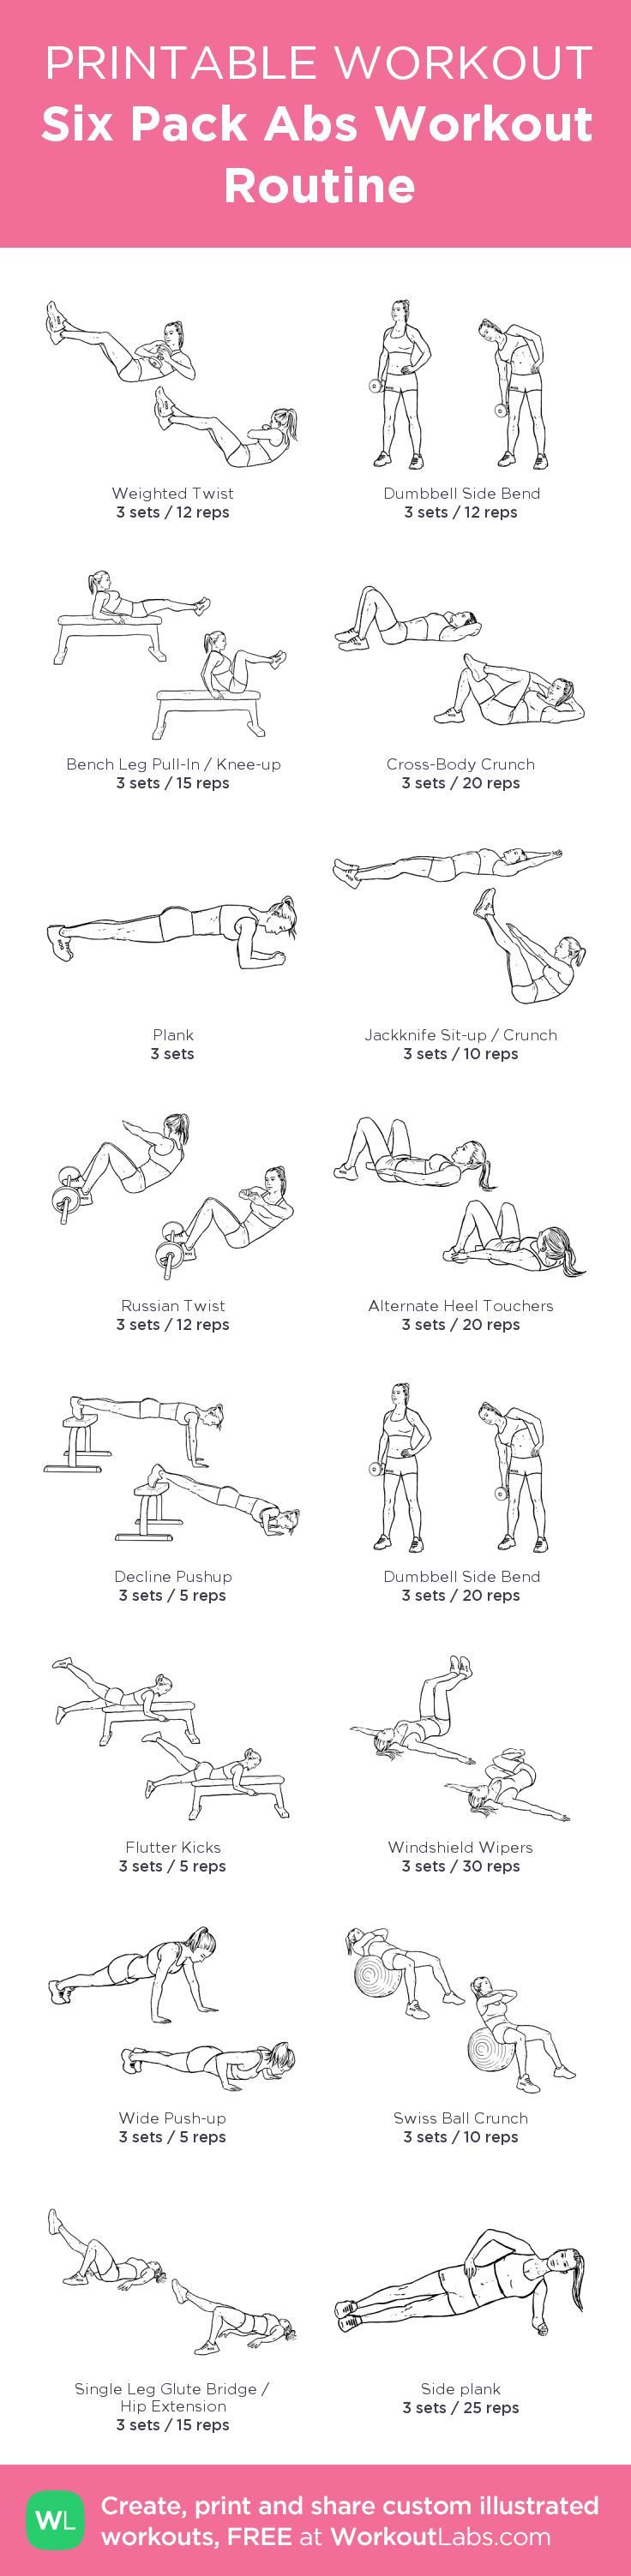 Six Pack Abs Workout Routine: my custom printable workout by @WorkoutLabs #workoutlabs #customworkout — http://realresultsin3weeks.info/